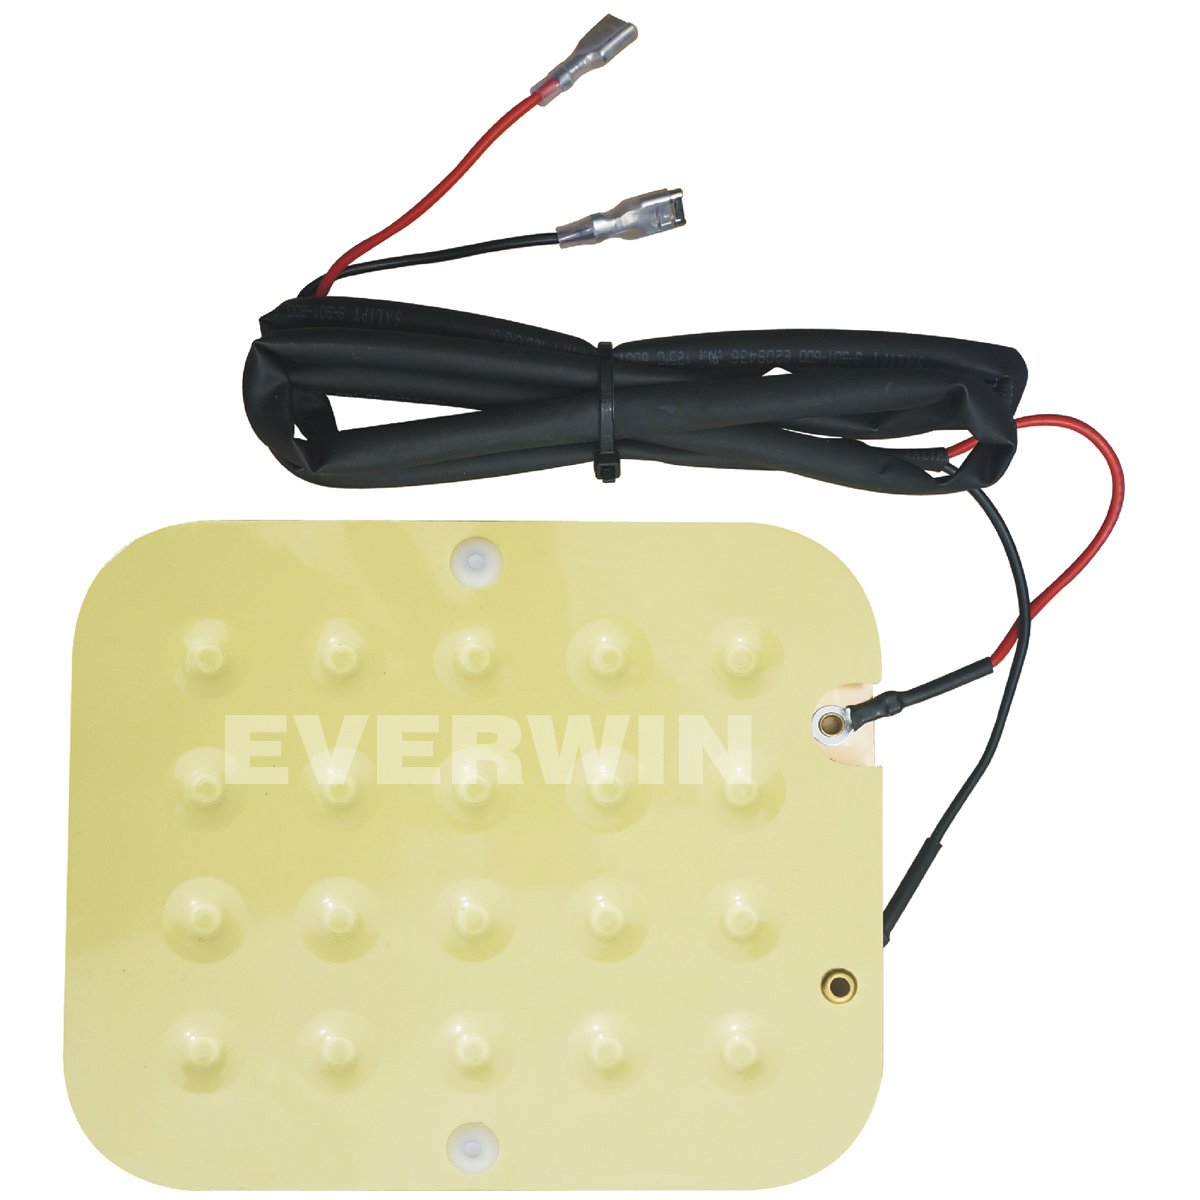 Ew20002 Waterproof Seat Switch Micro Switch OPS